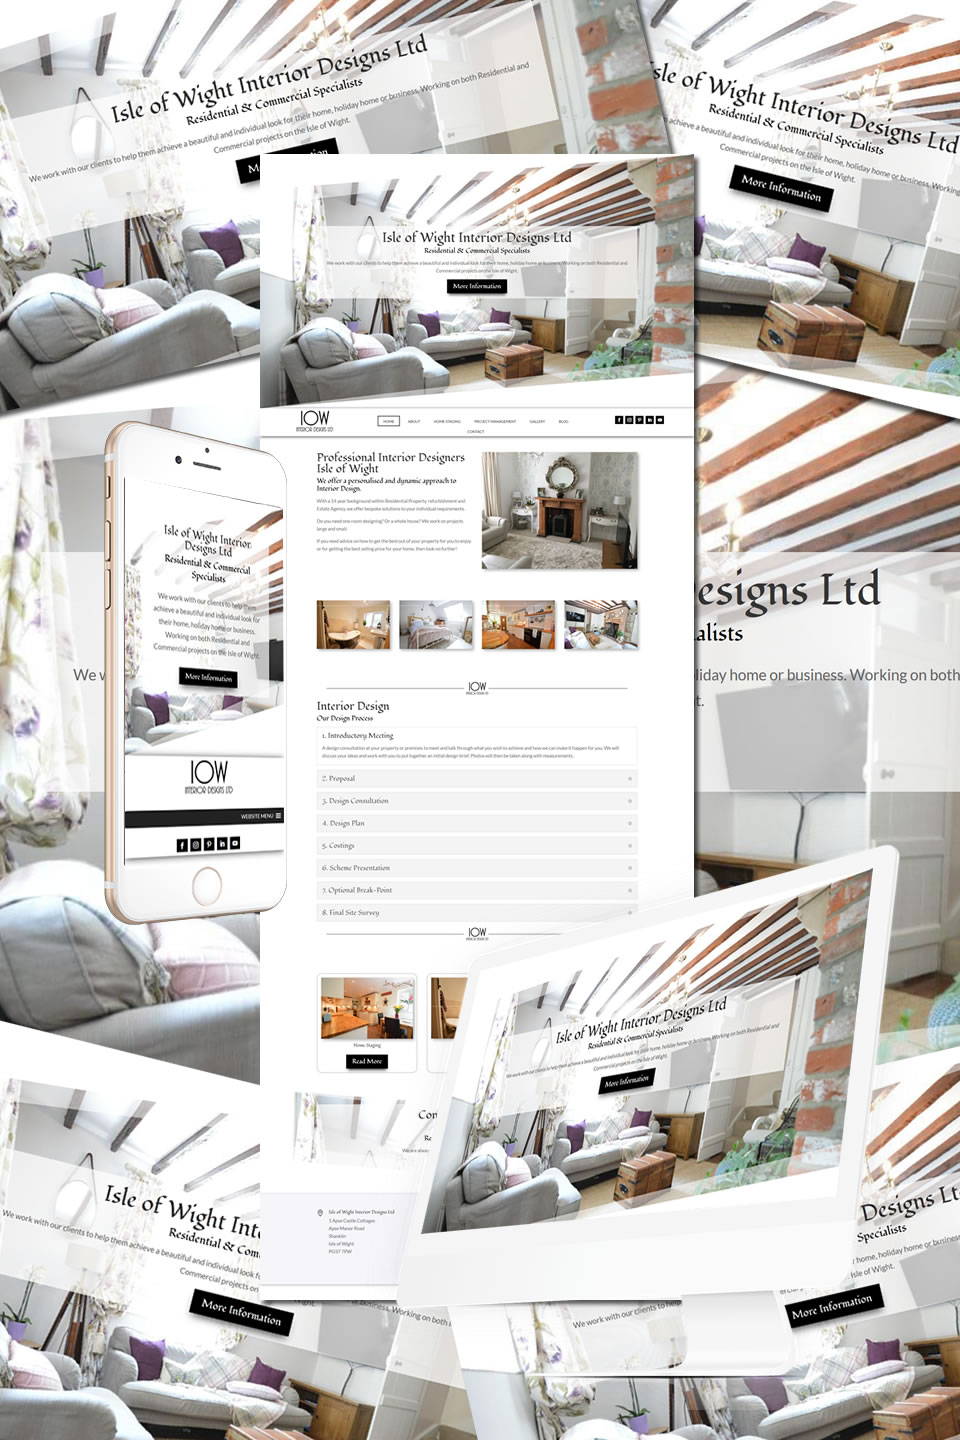 Isle of Wight Interior Designers